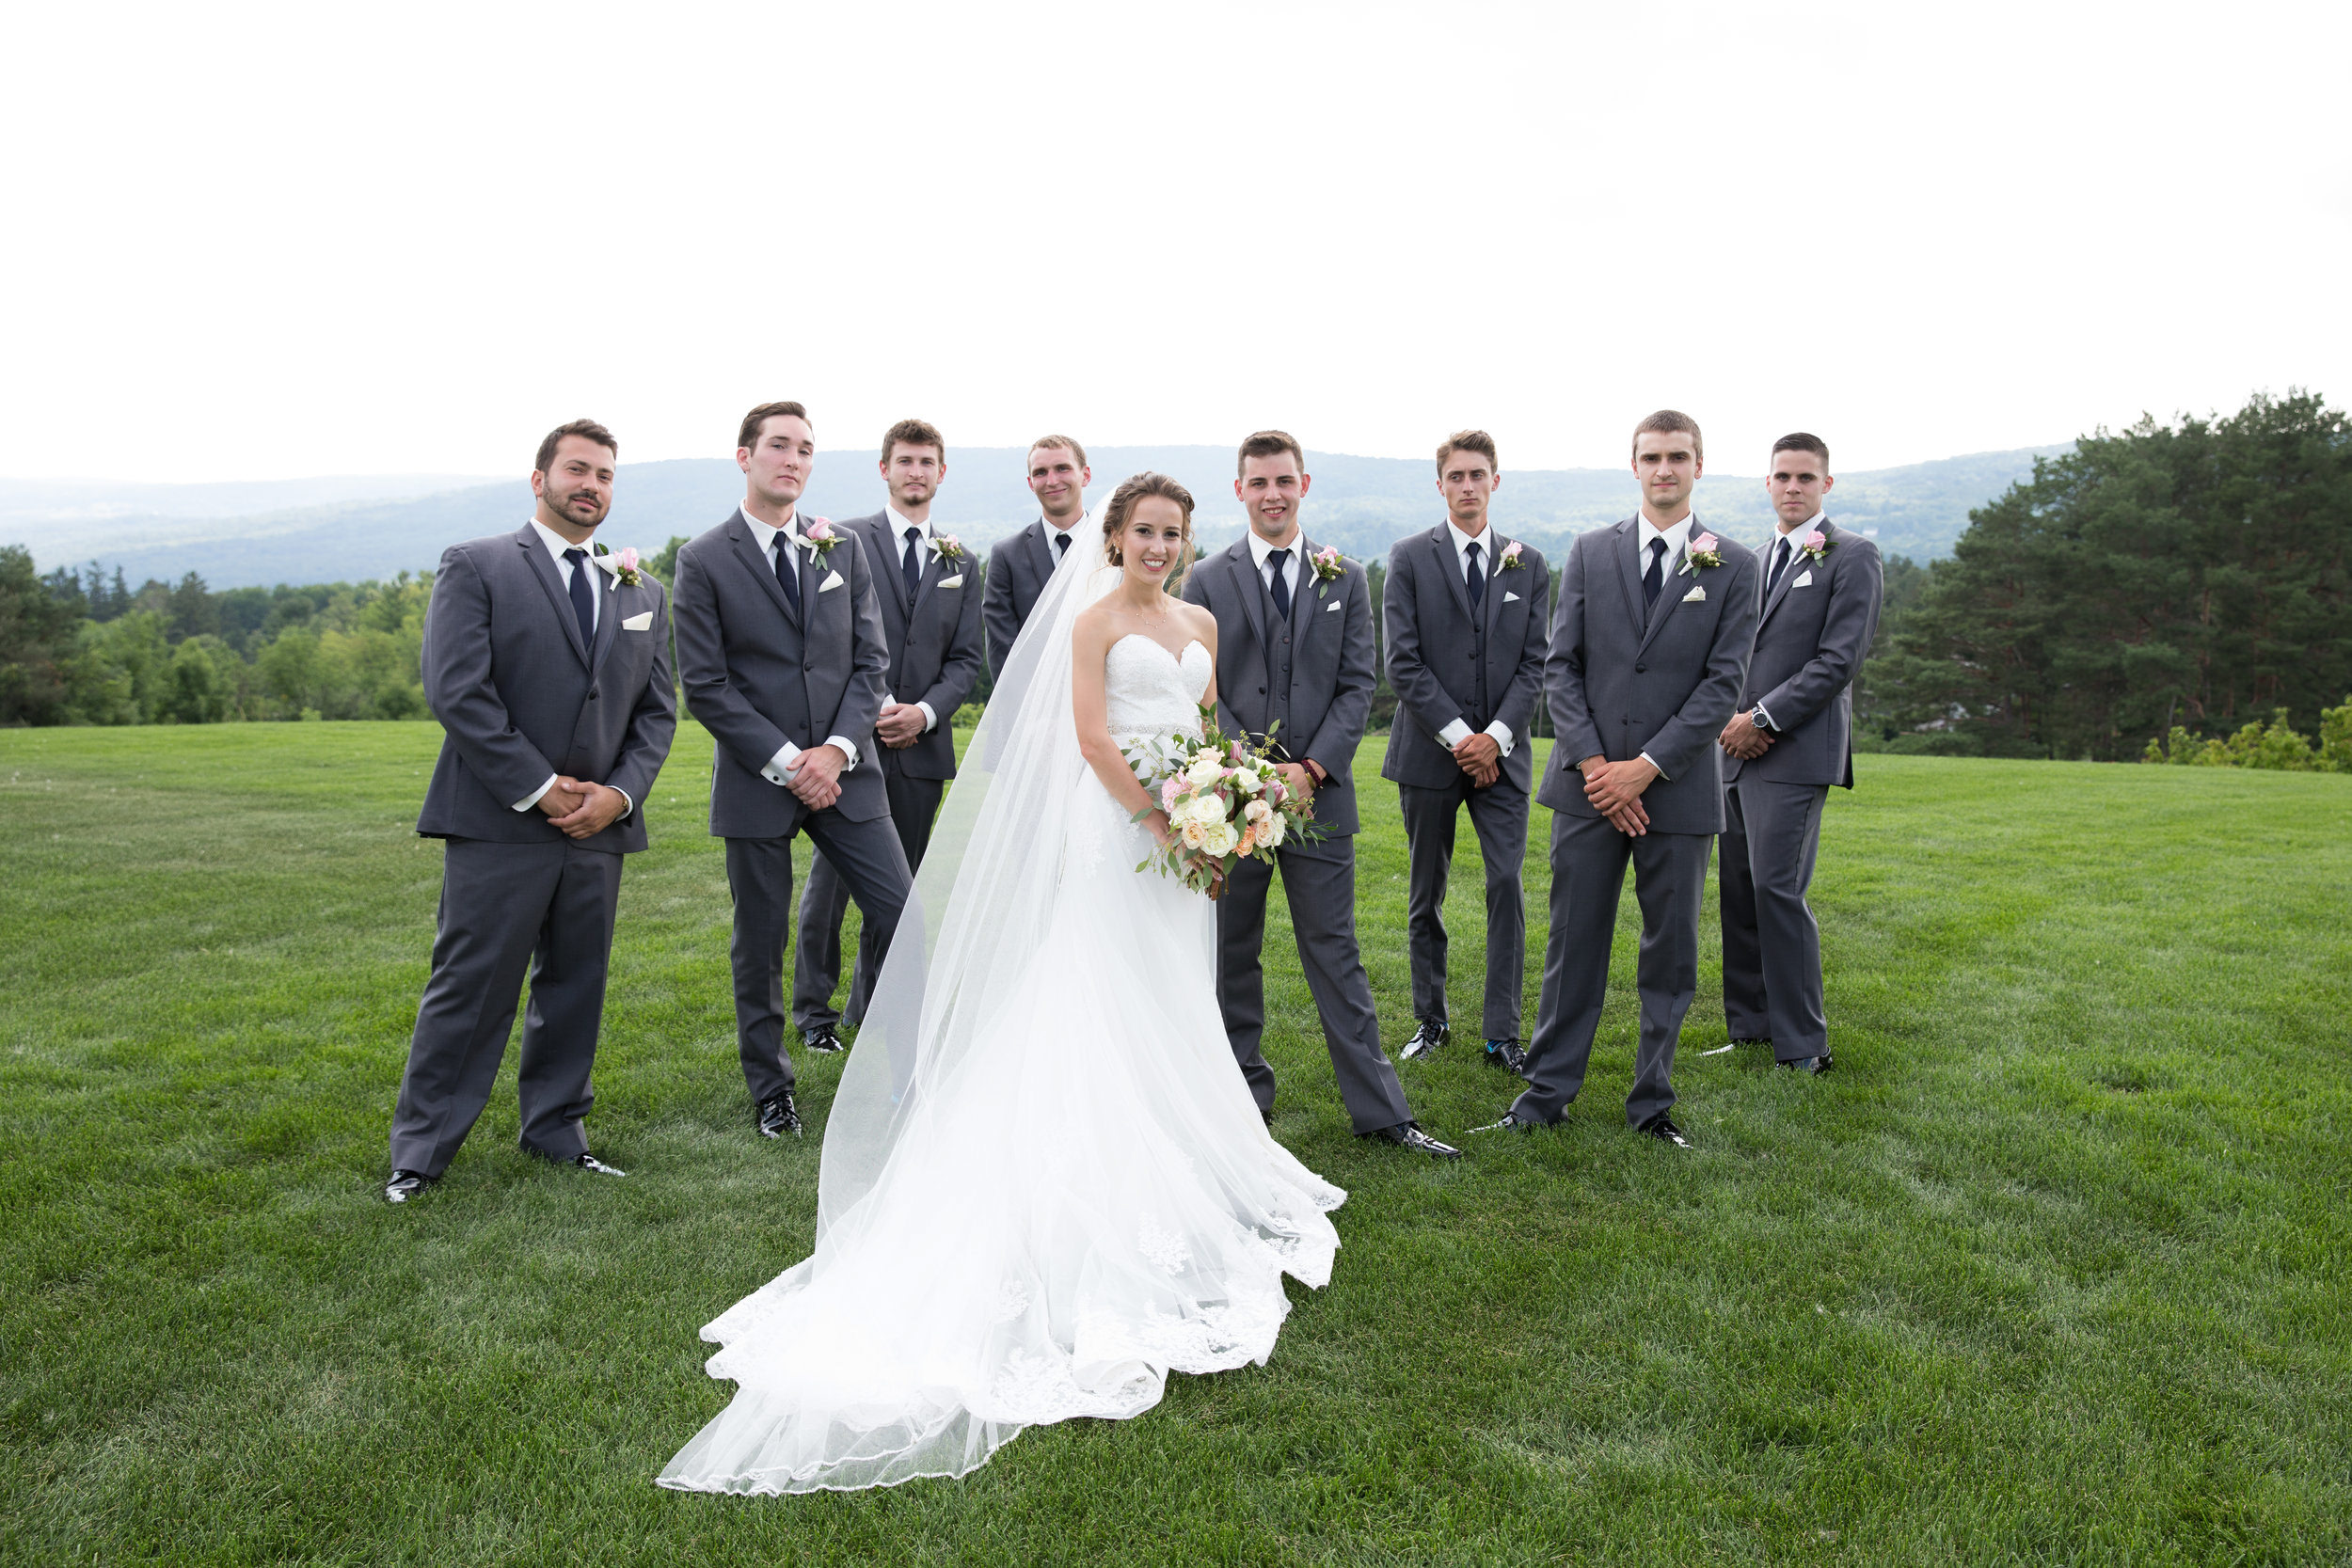 rochesterfeaturewedding-101.jpg